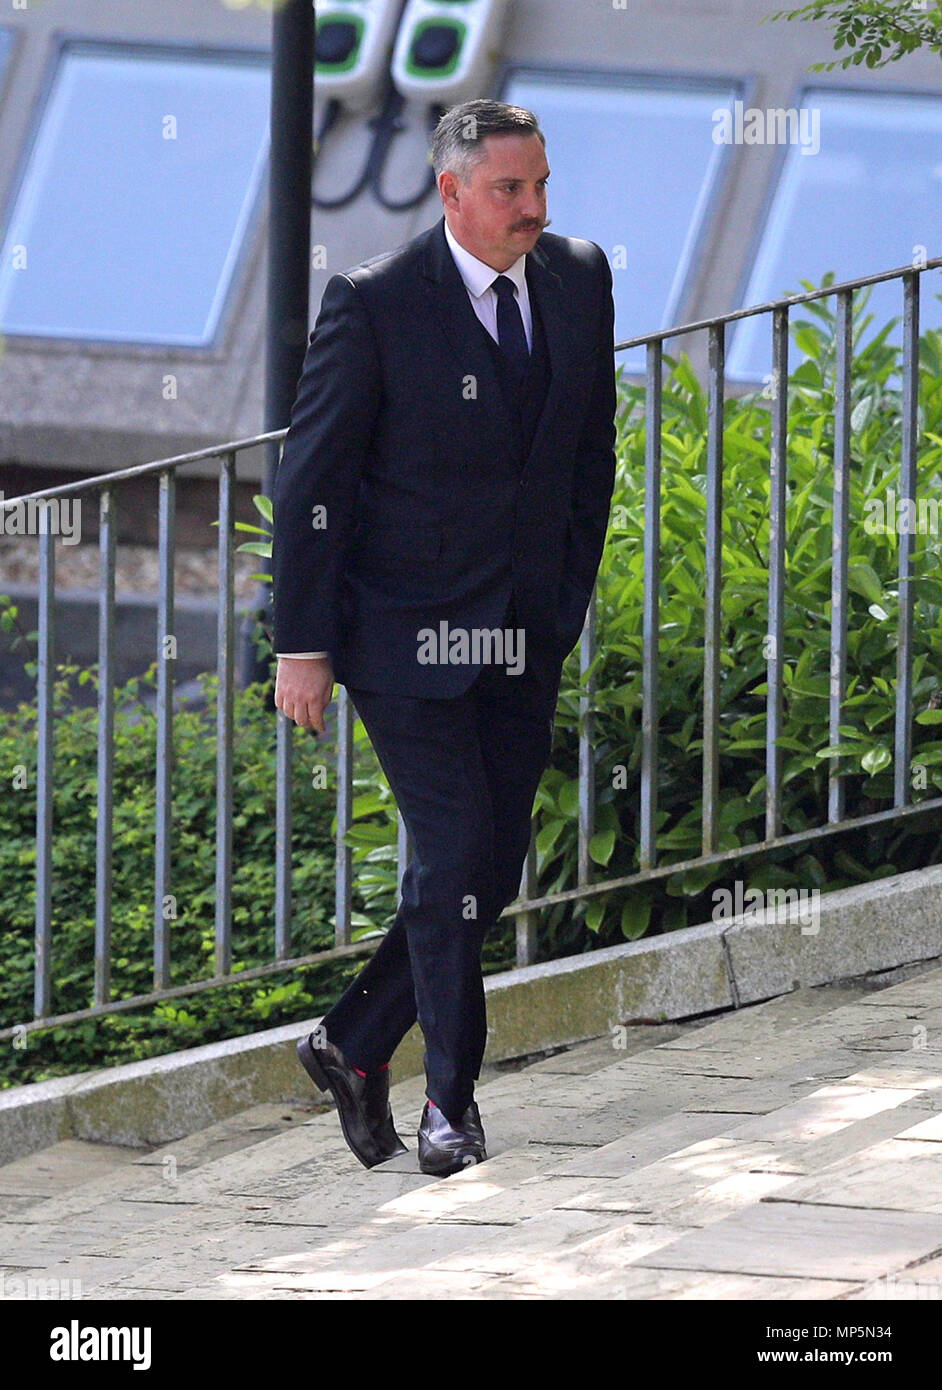 Matthew Pritchard arrives at Winchester Crown Court in Hampshire, where he is on trial for Misconduct in Public Office. Stock Photo